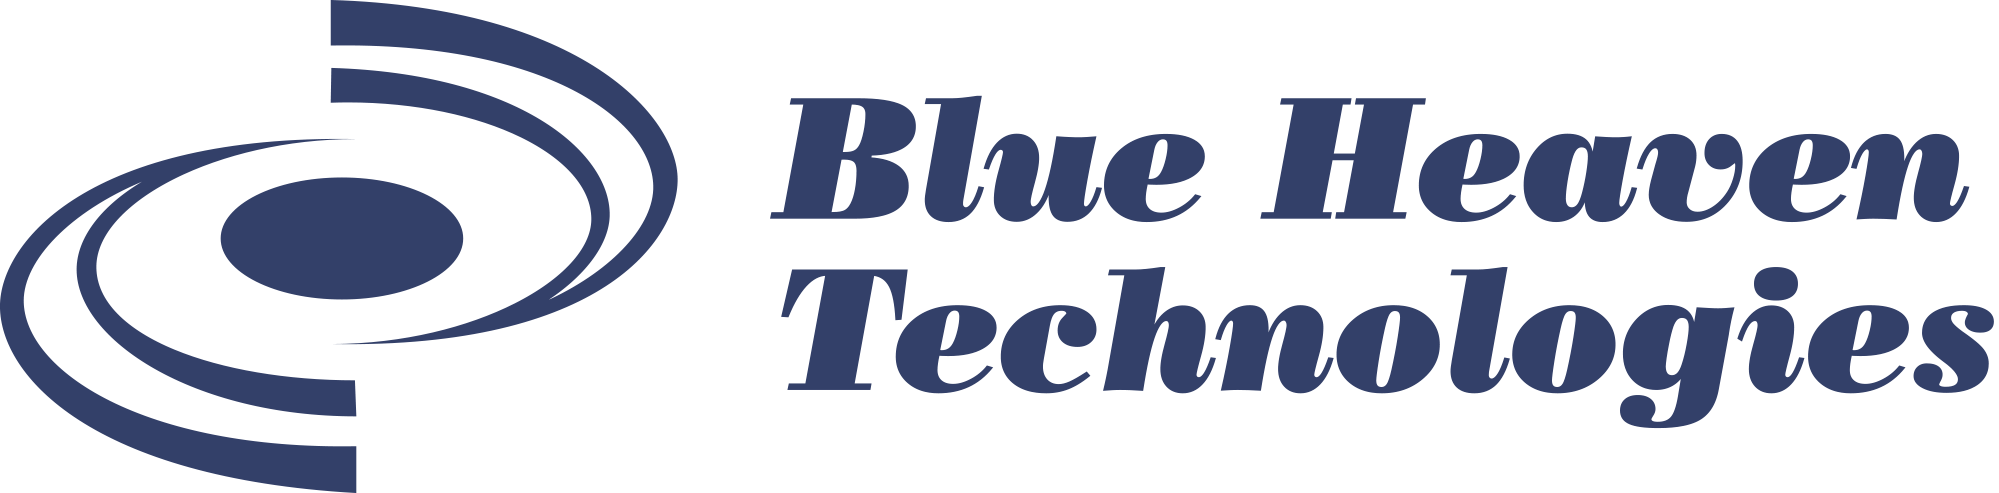 Blue Heaven Technologies Logo